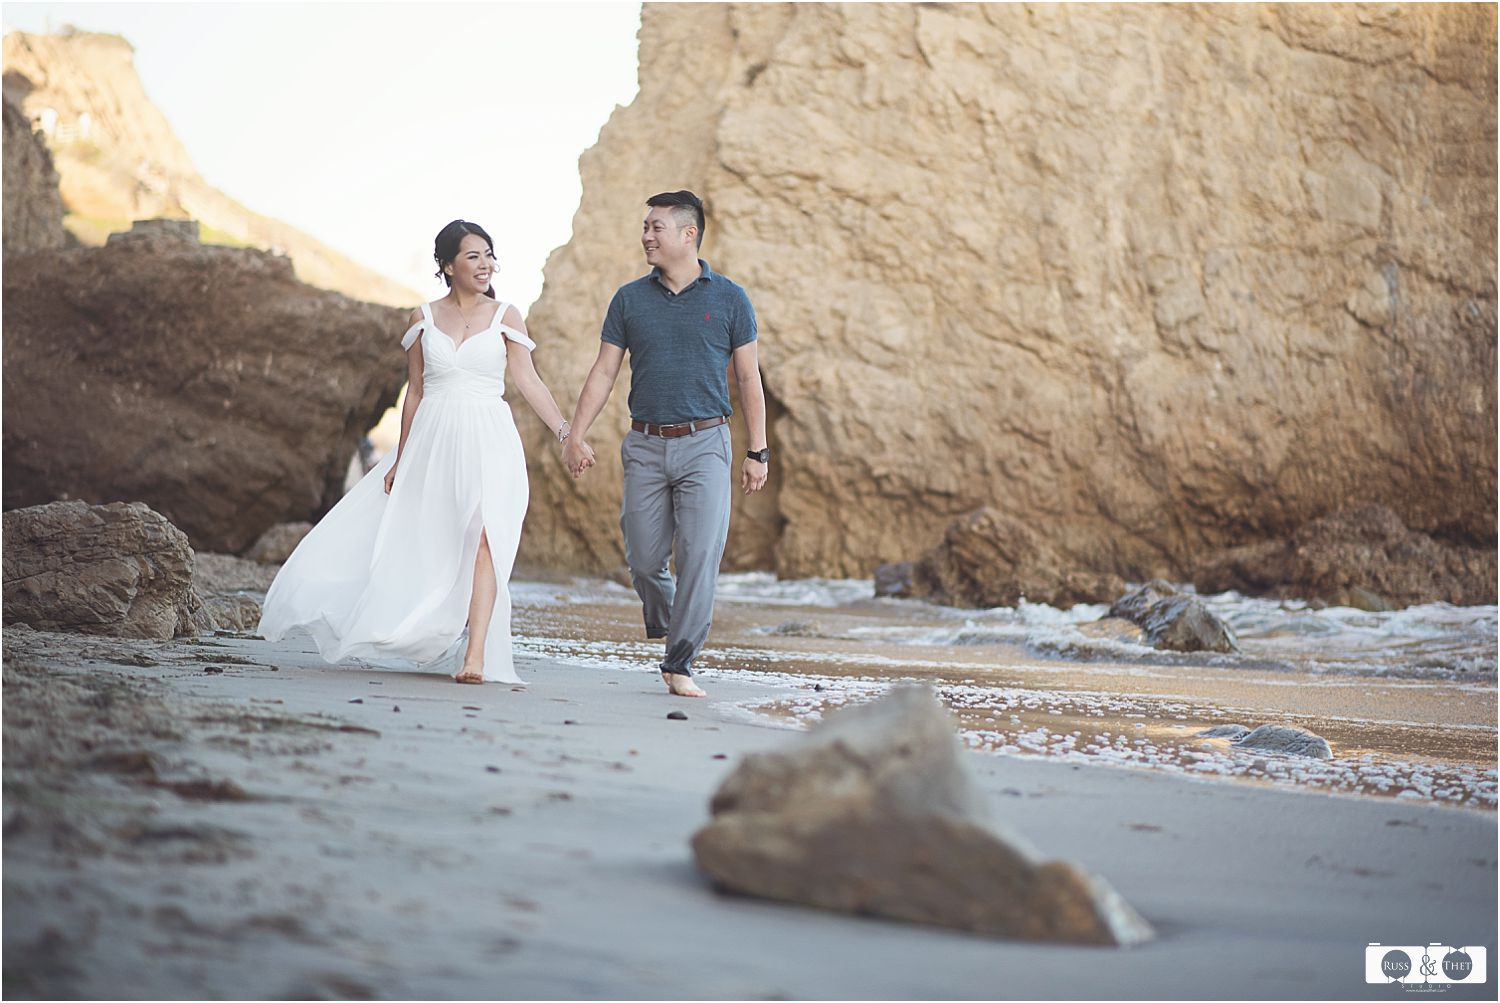 el-matador-malibu-engagement-ideas (3).jpg